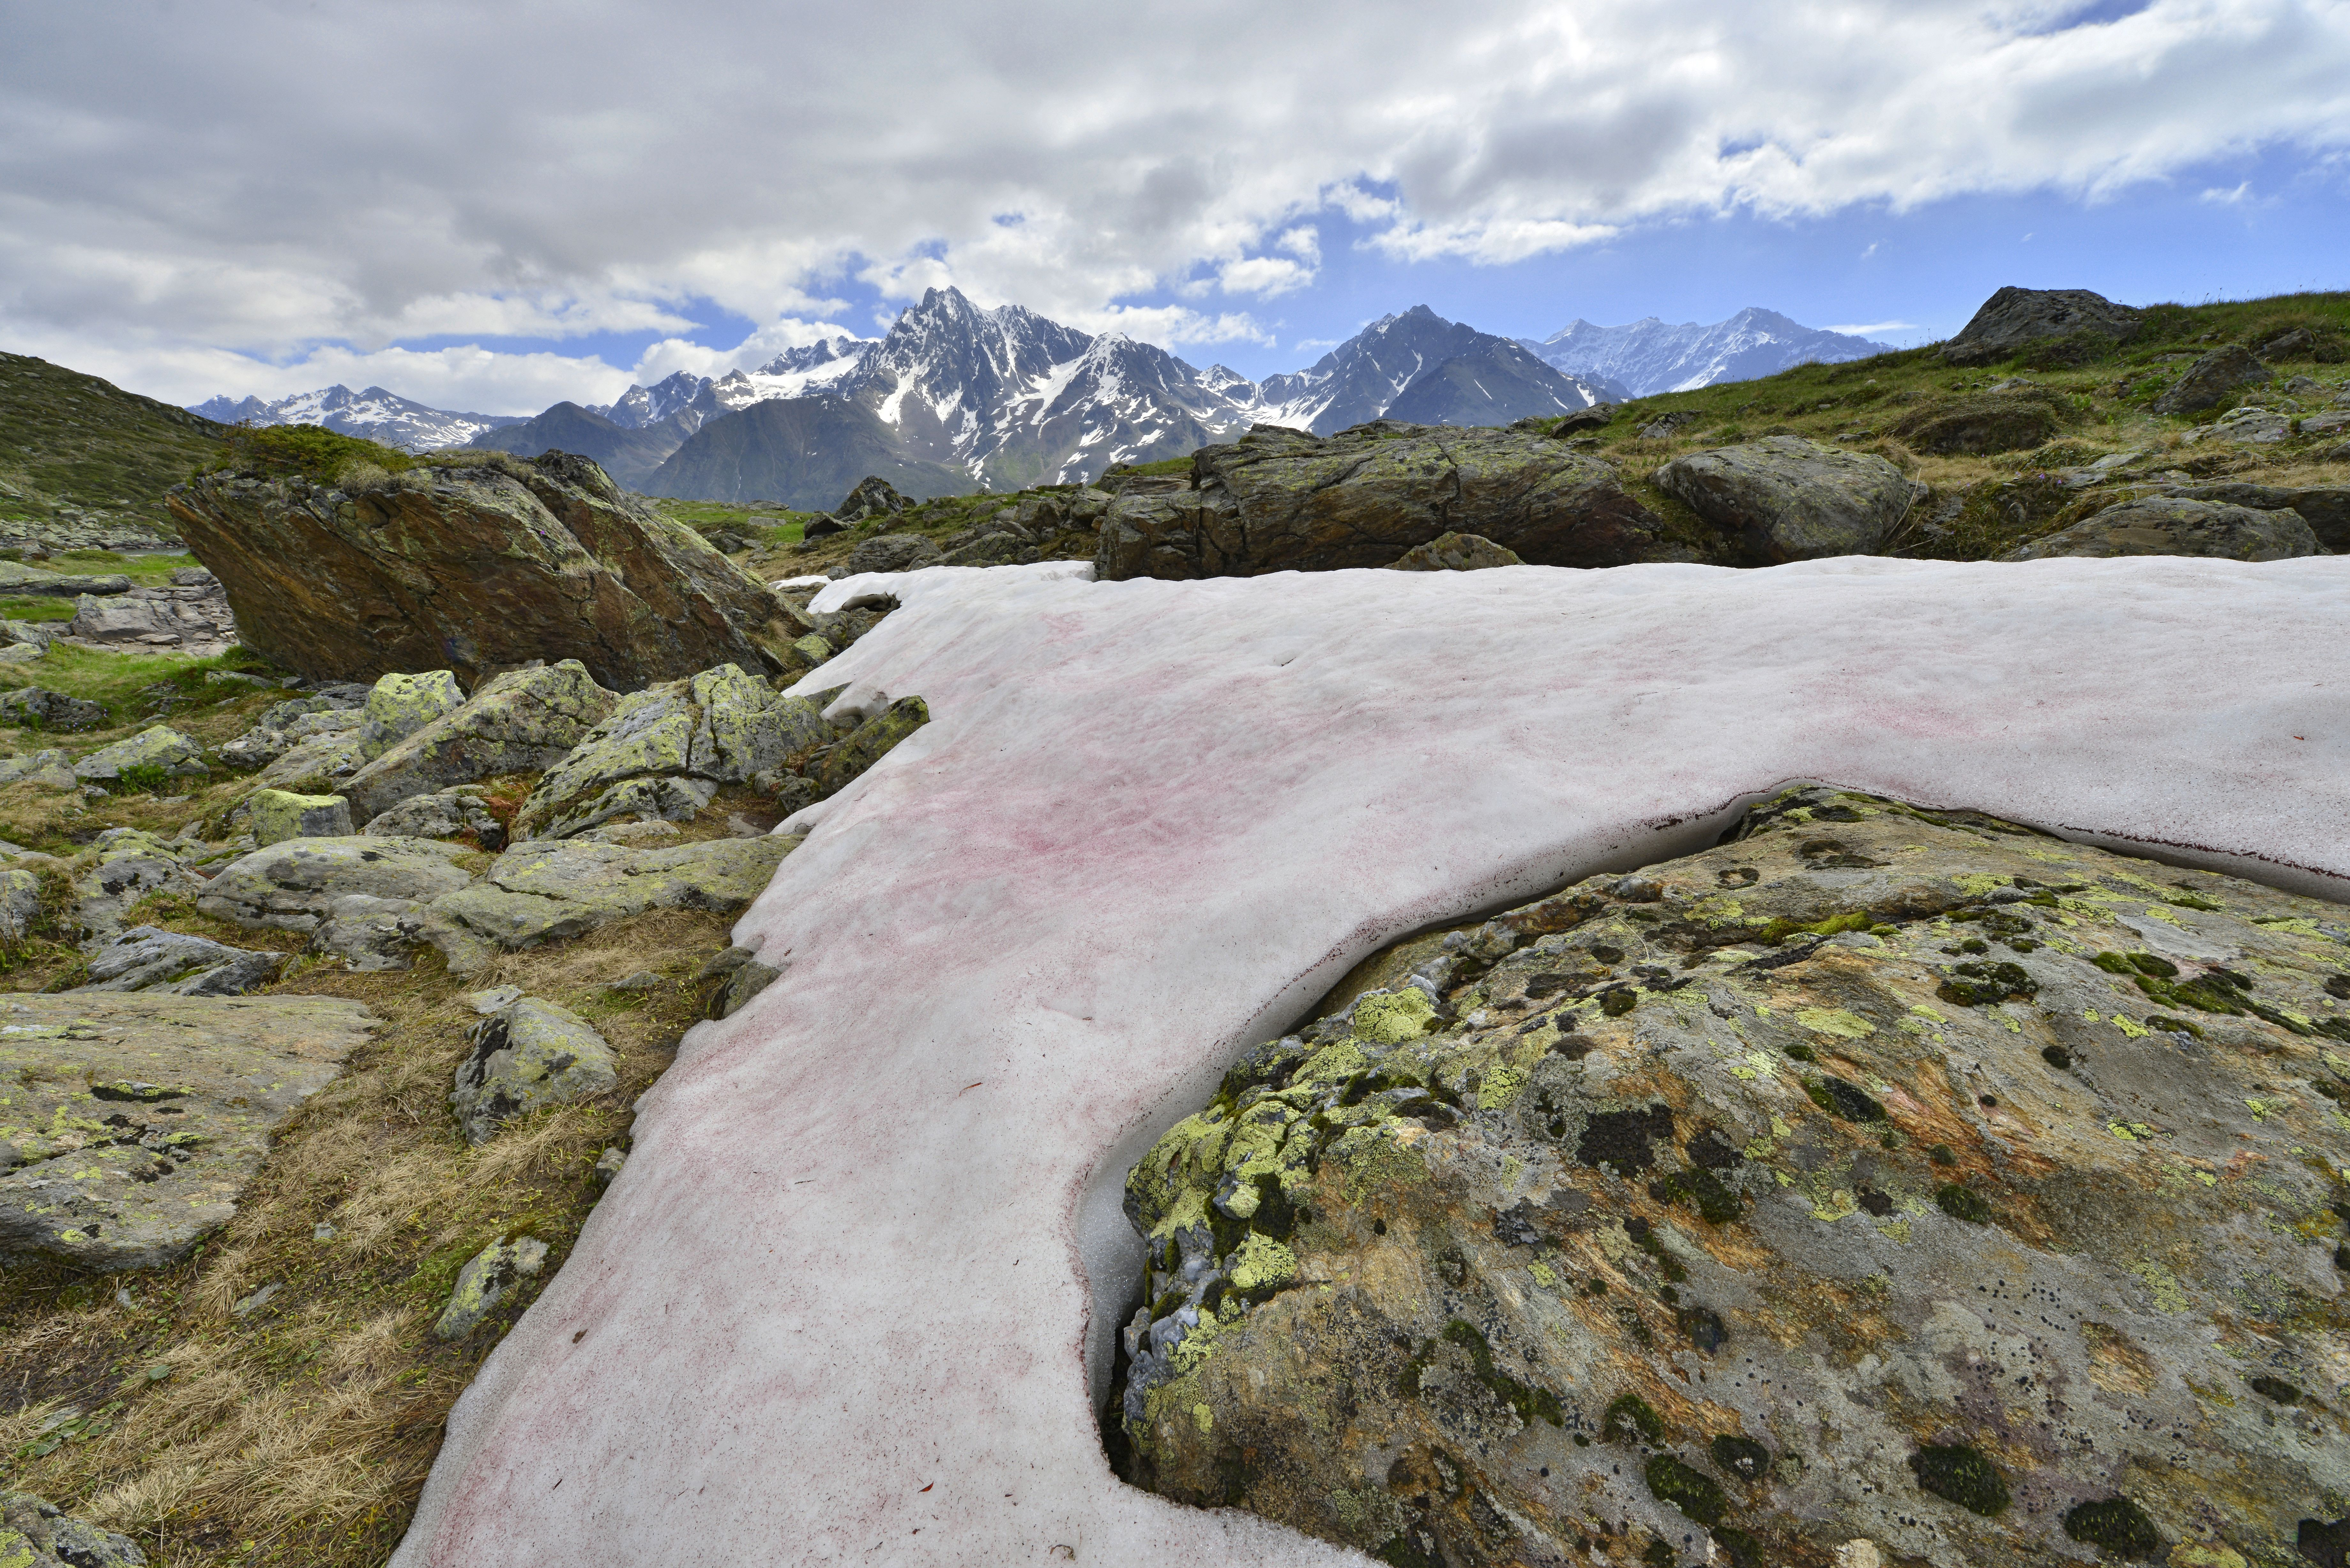 Bright Pink Snow In Italian Alps Is A Cute Sign Of Environmental Disaster